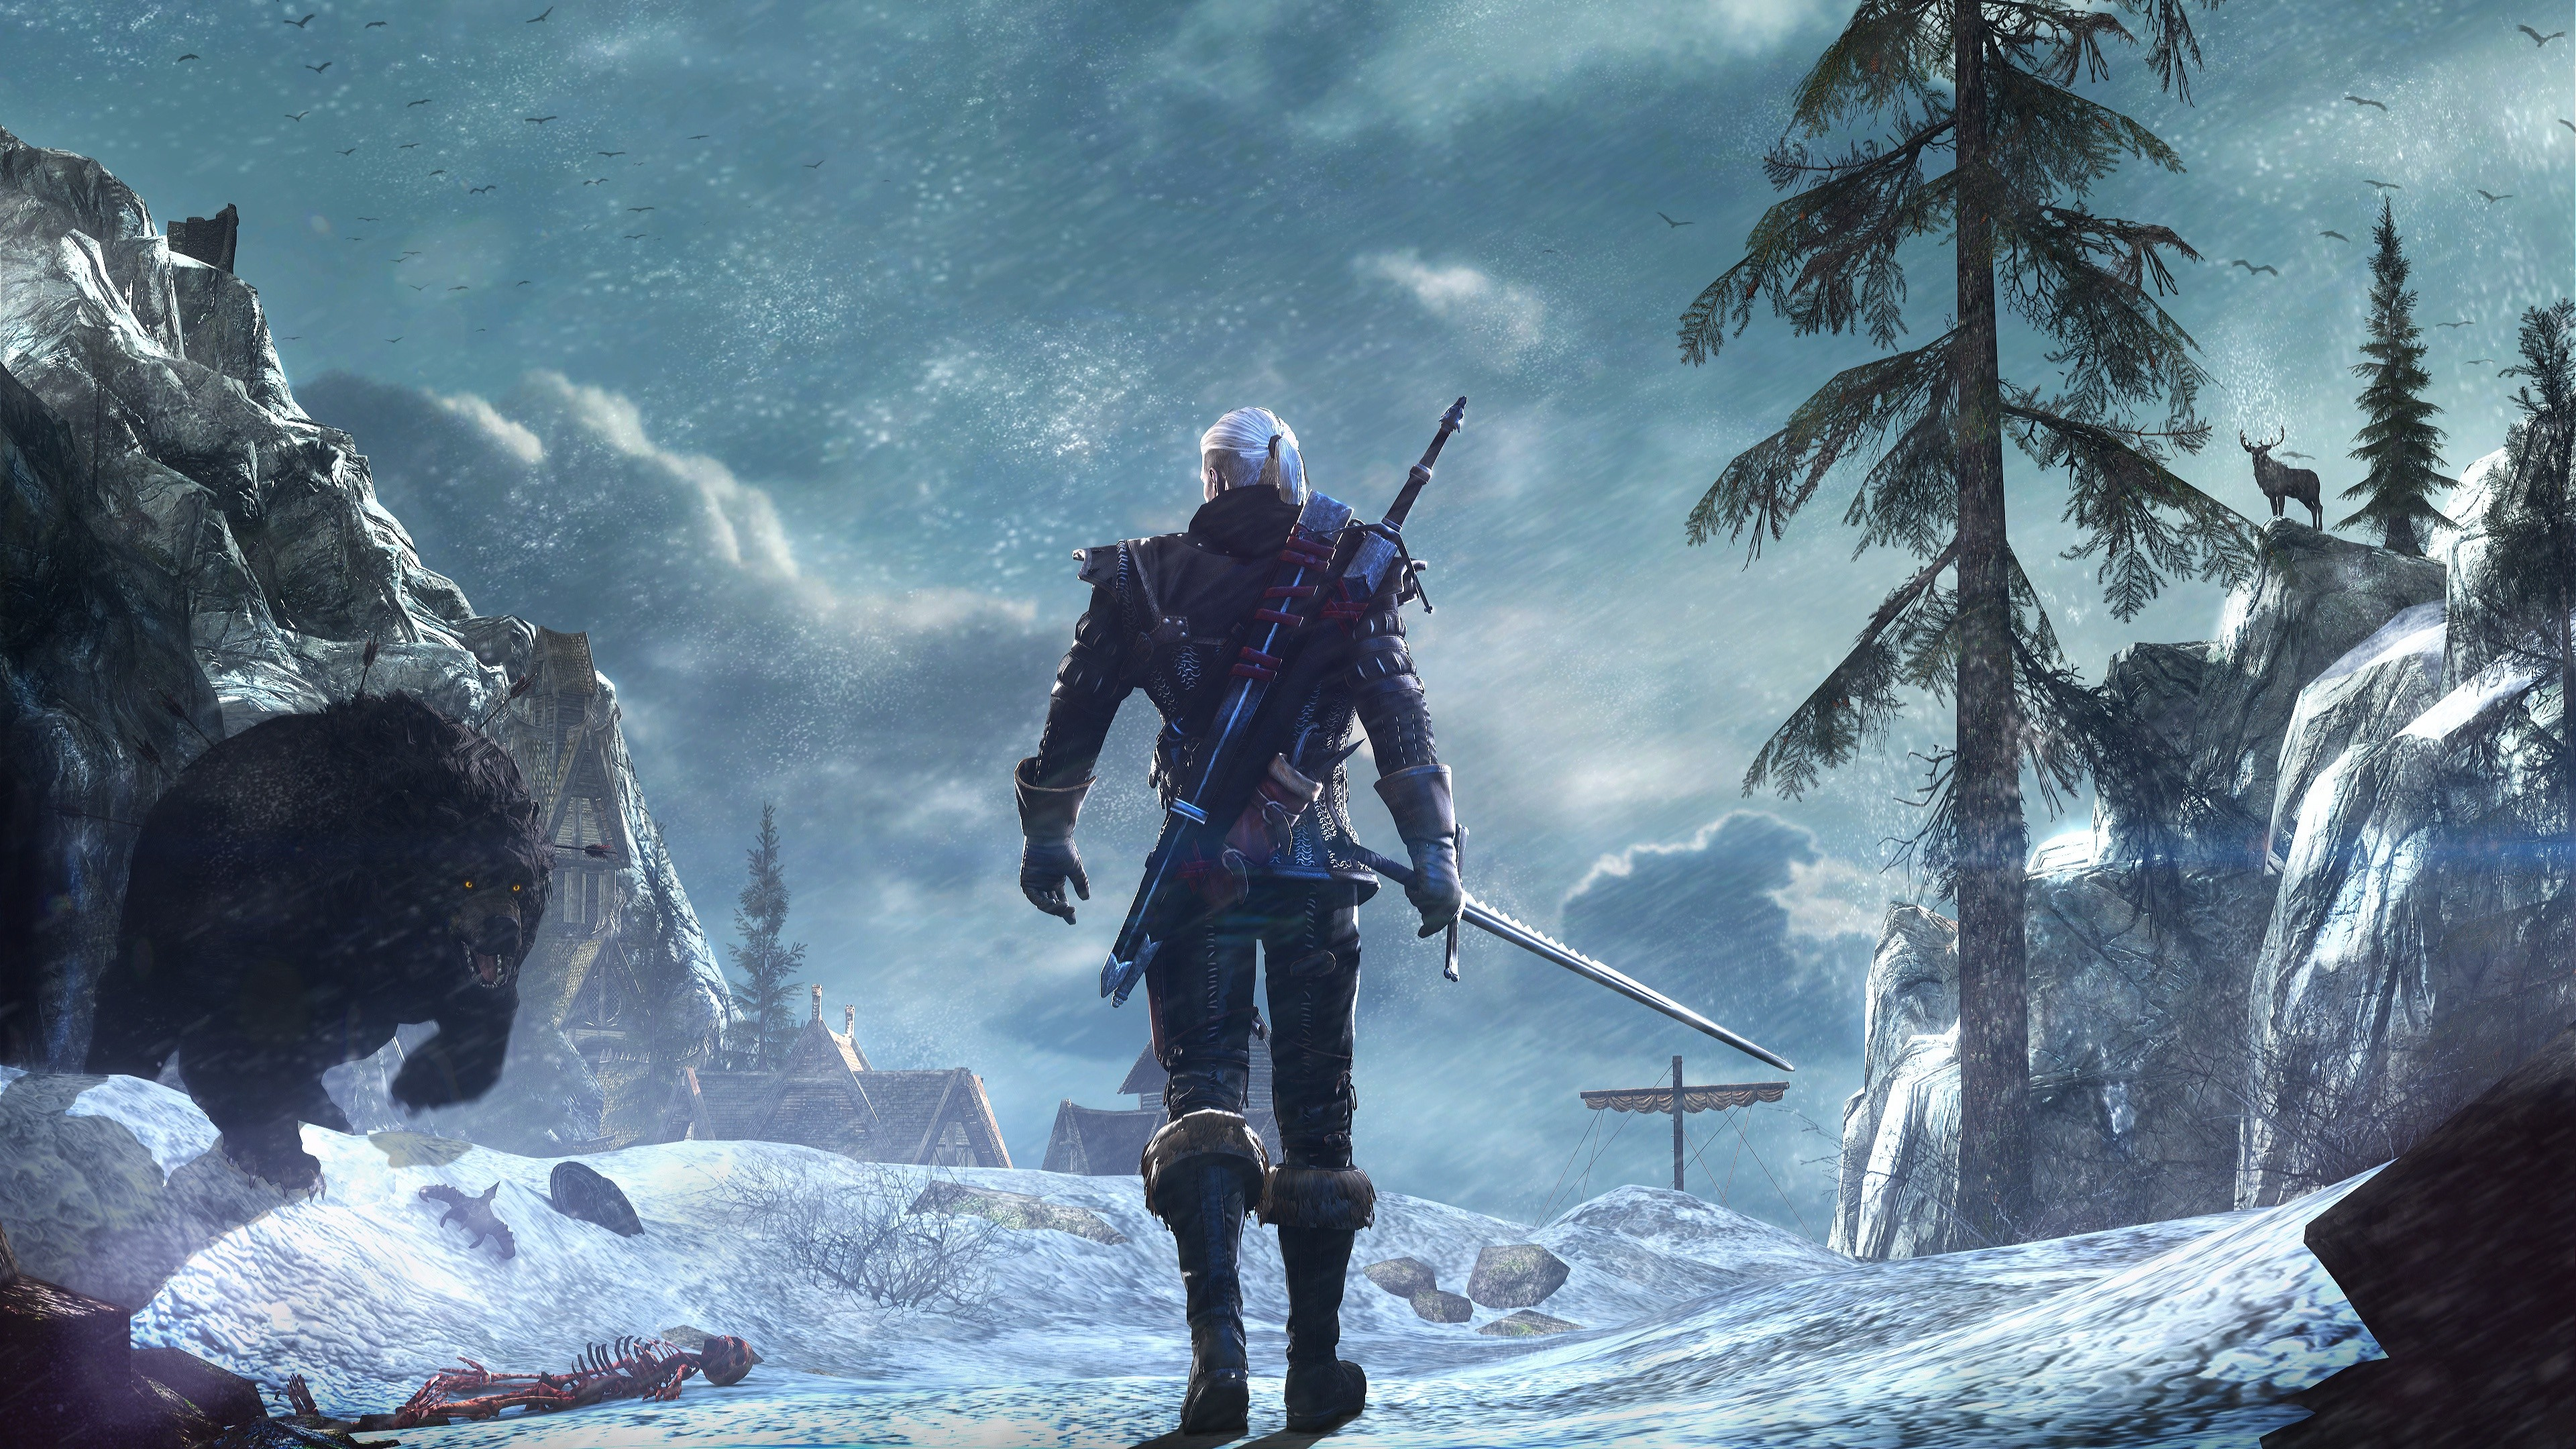 The Witcher 3 Ultra Hd Wallpaper Babangrichie Org